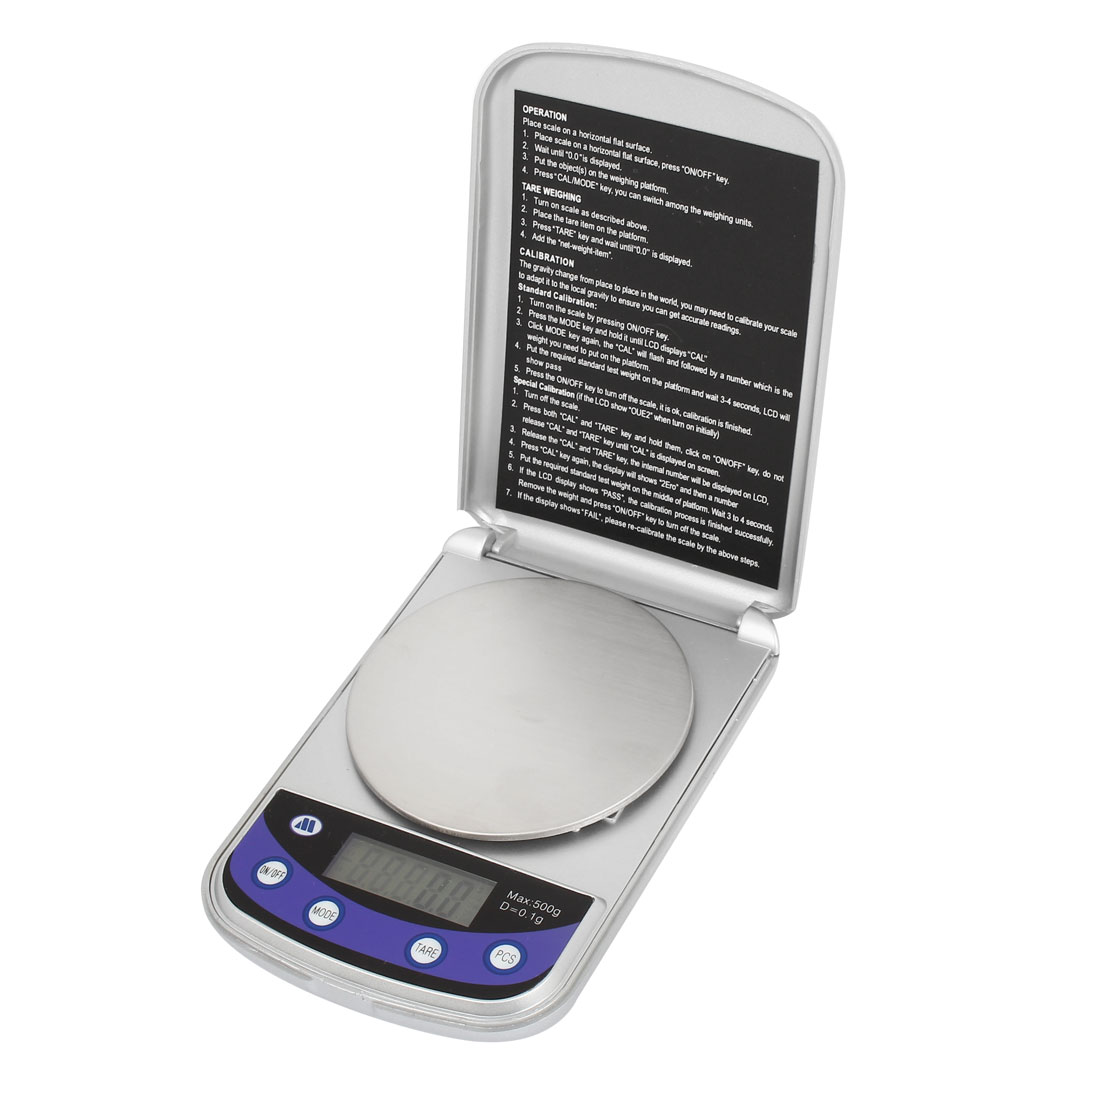 Flip Open 500g/0.1g Jewelry Weight Balance Digital Pocket Scale Silver Tone